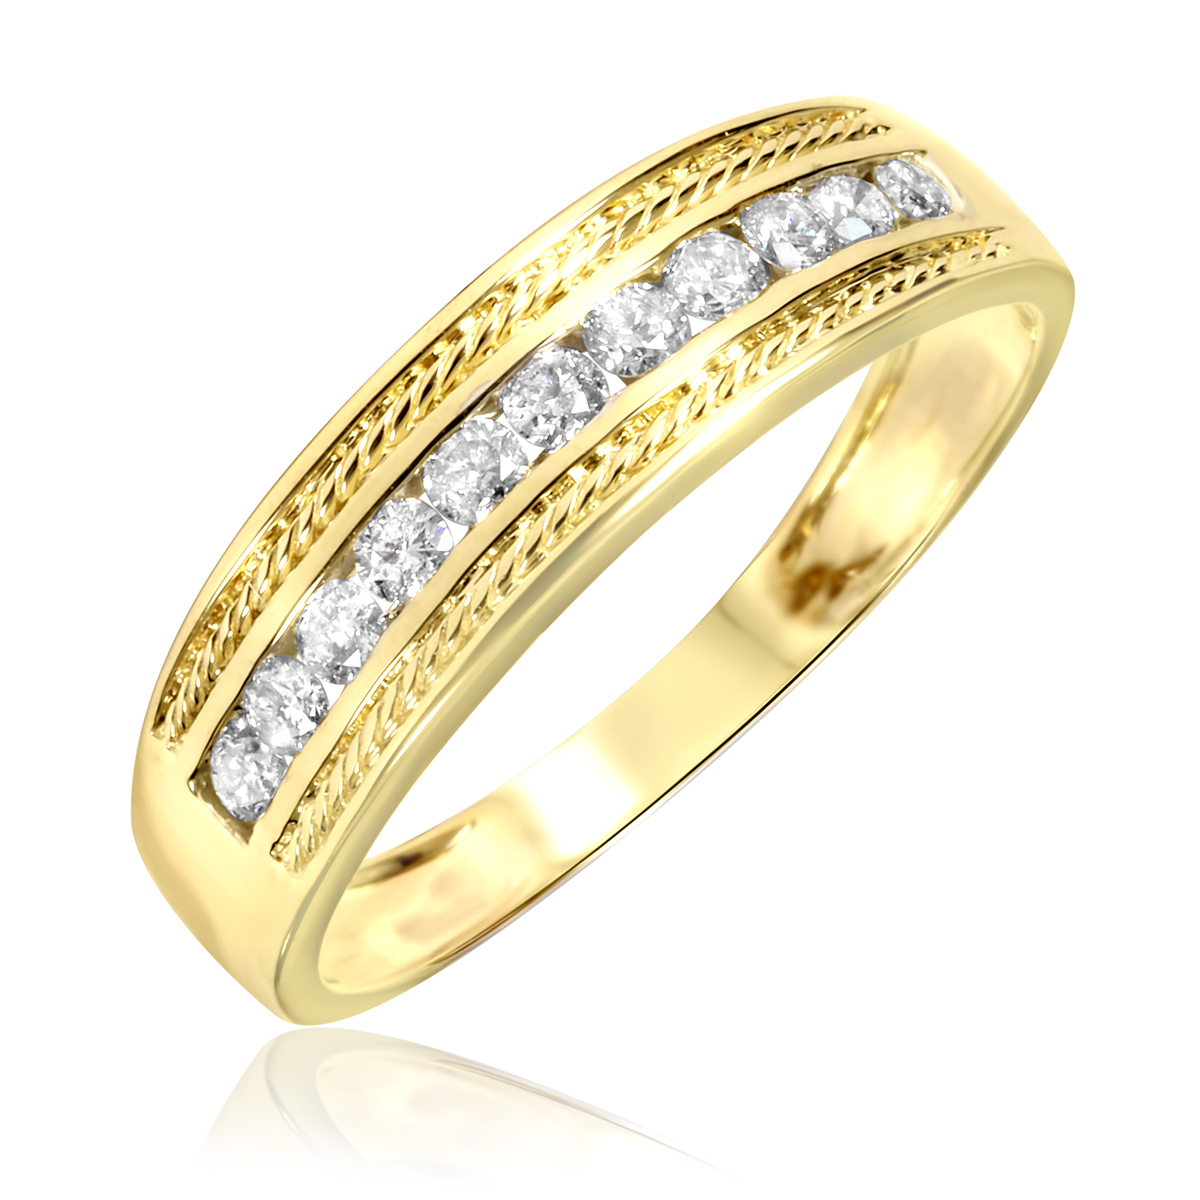 wedding bands for men male wedding bands Wedding Bands for Men